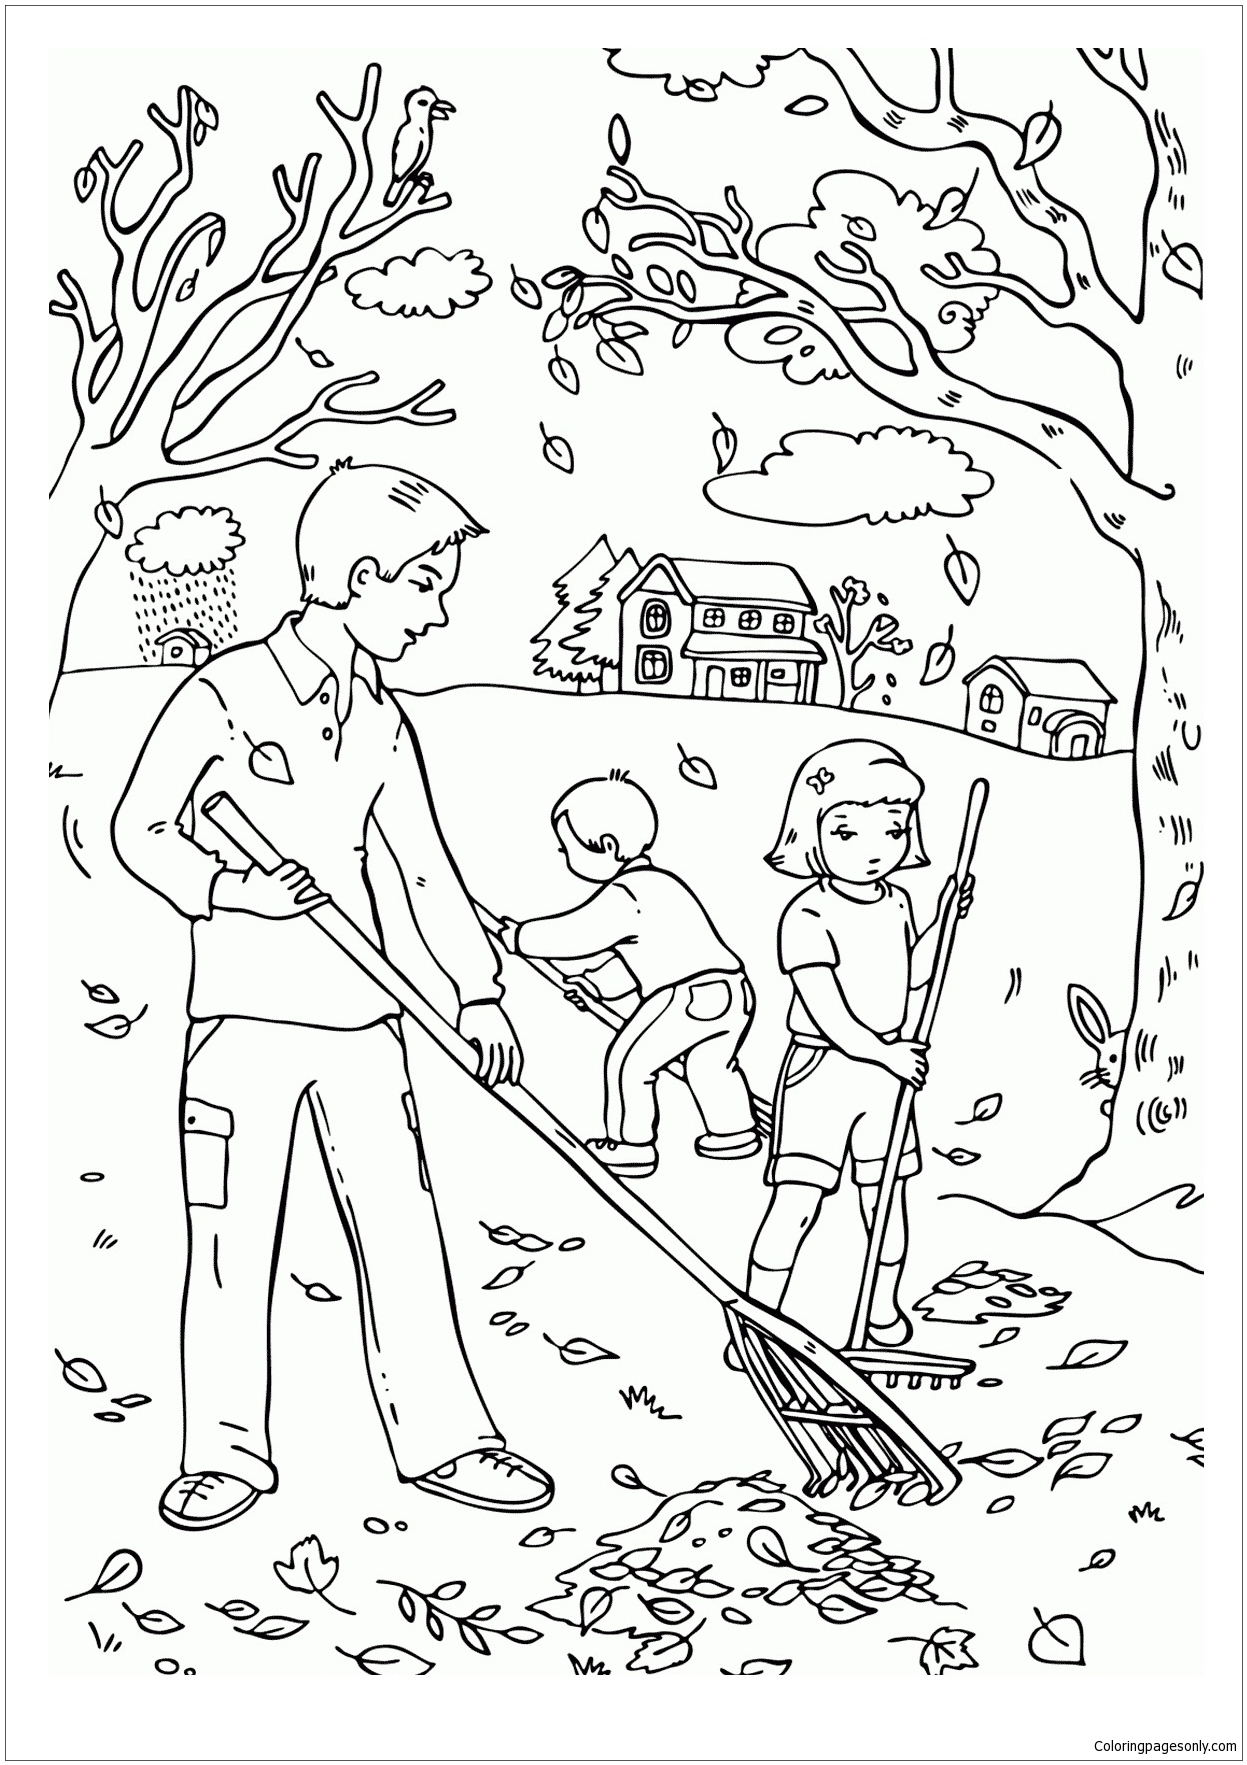 Cleaning Leaves Coloring Page